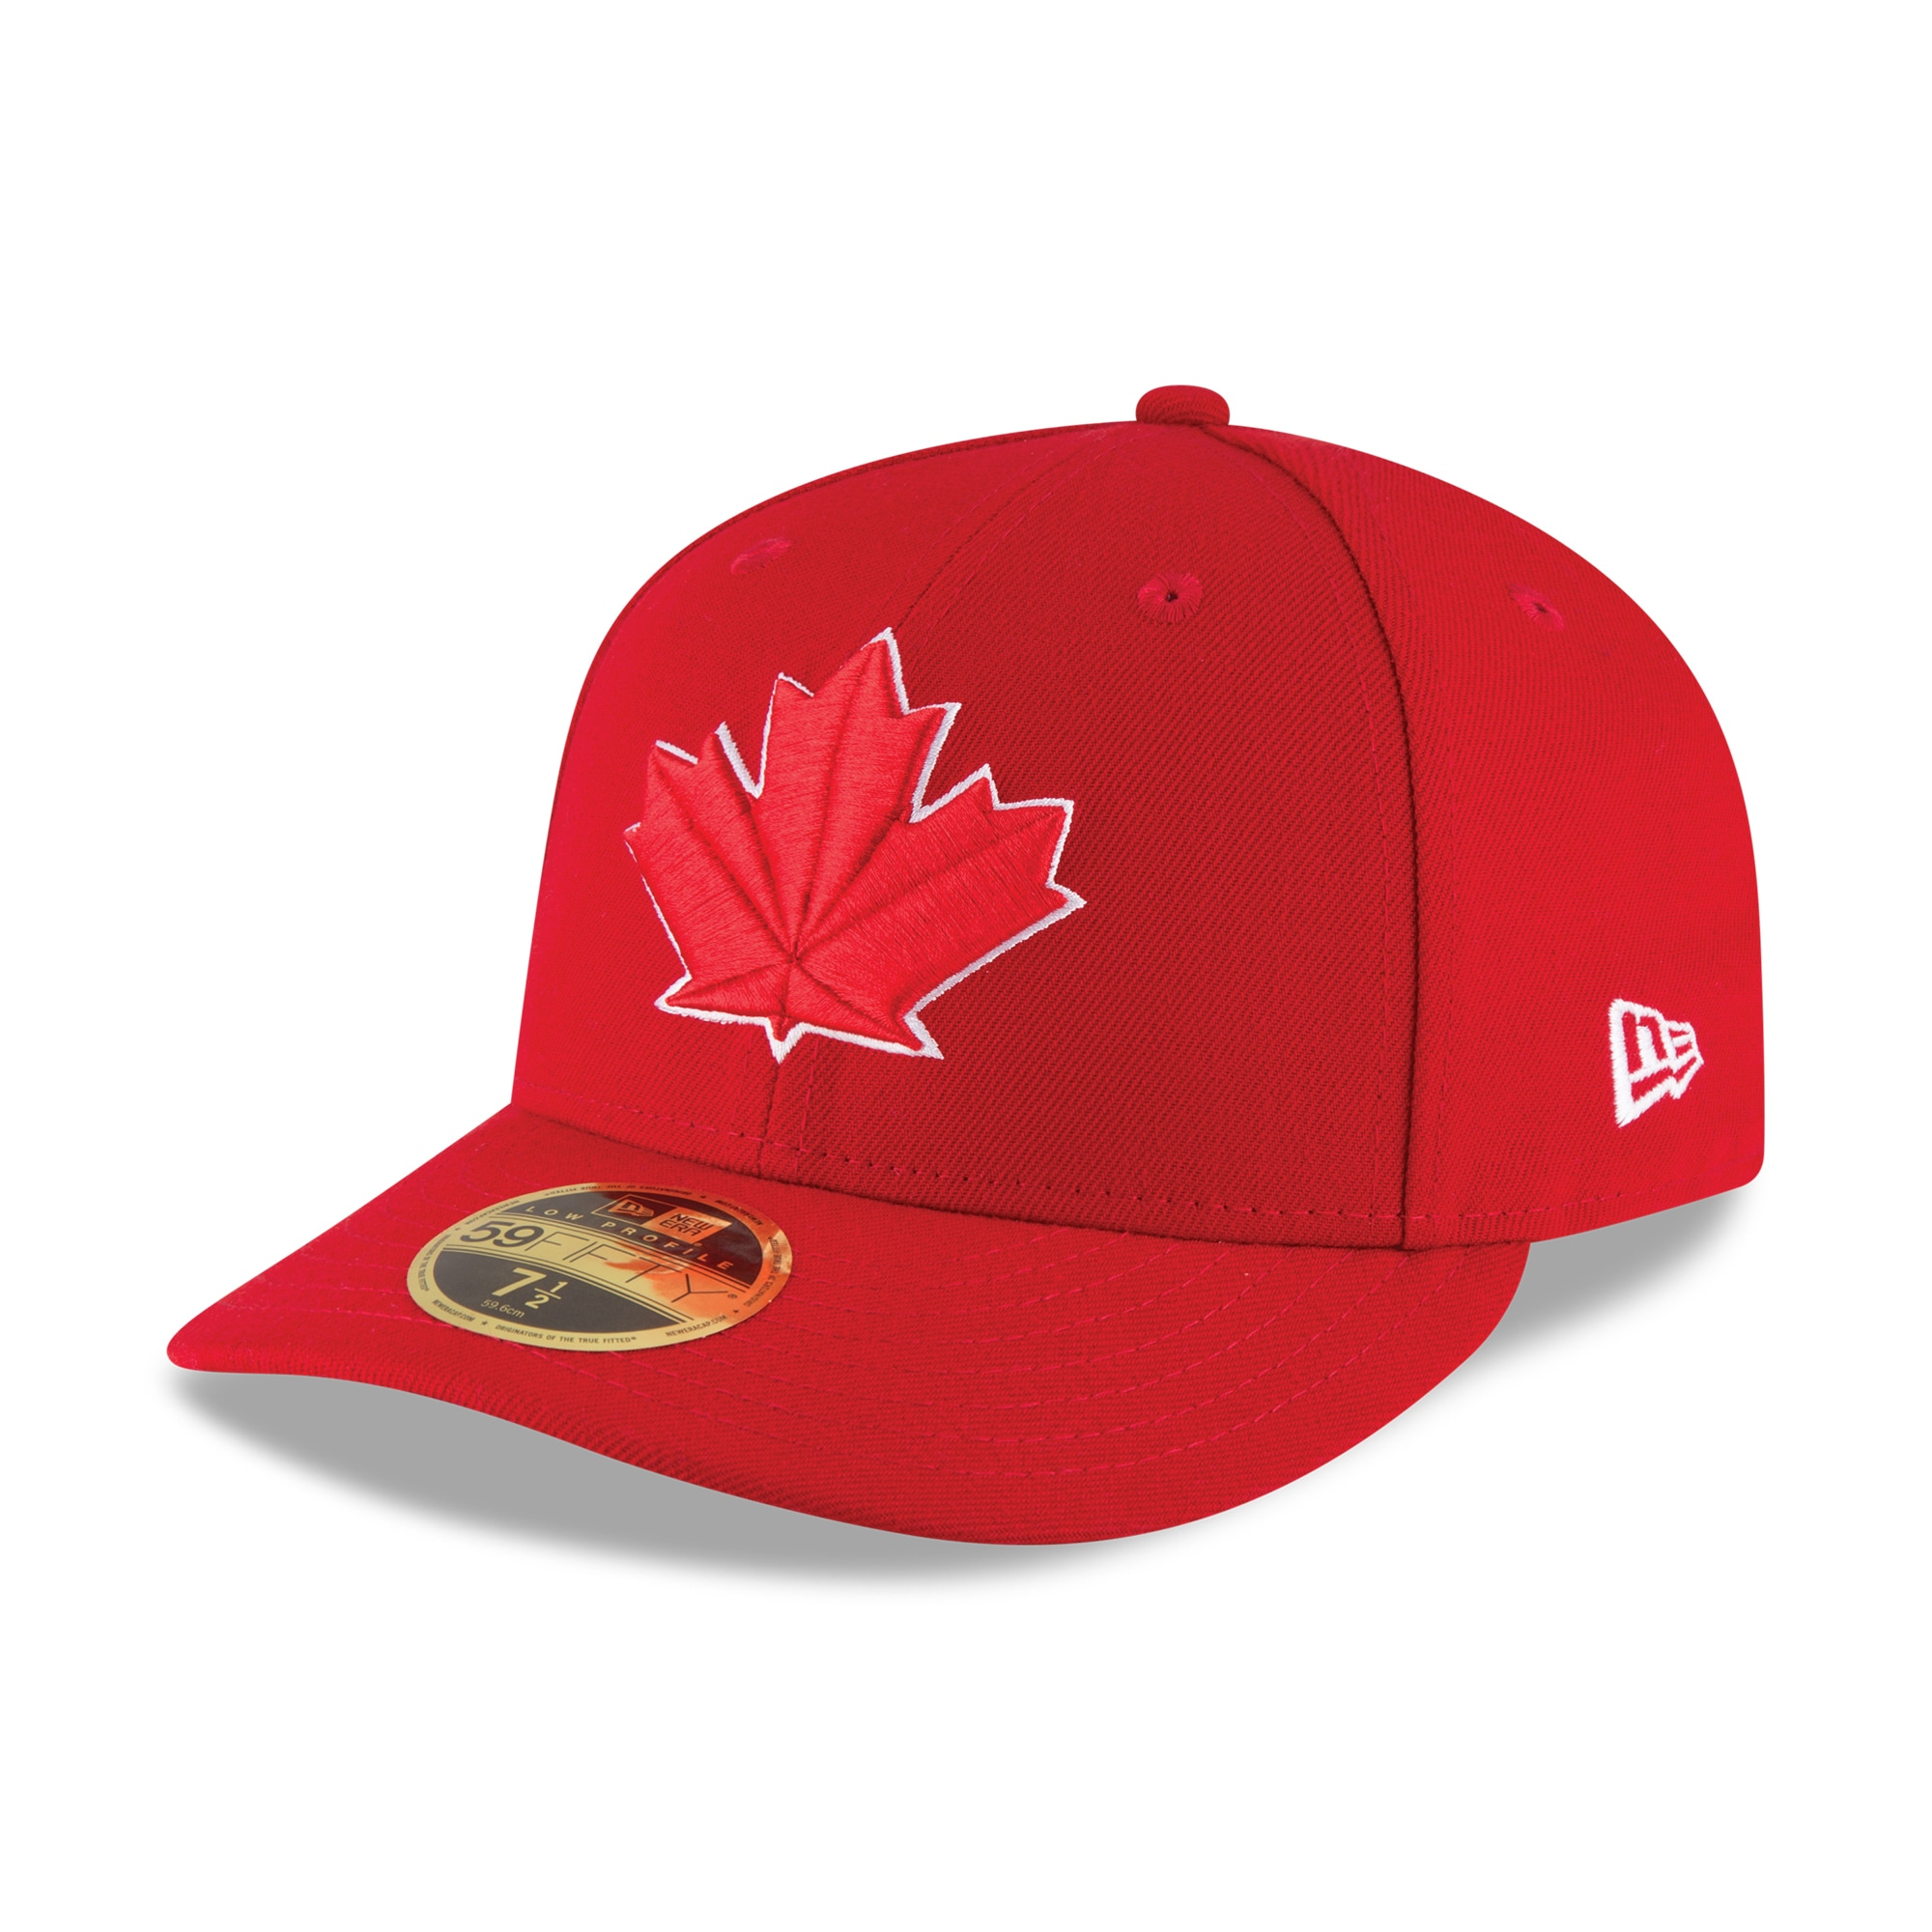 Toronto Blue Jays New Era 2017 Authentic Collection On-Field Low Profile 59FIFTY Fitted Hat - Scarlet